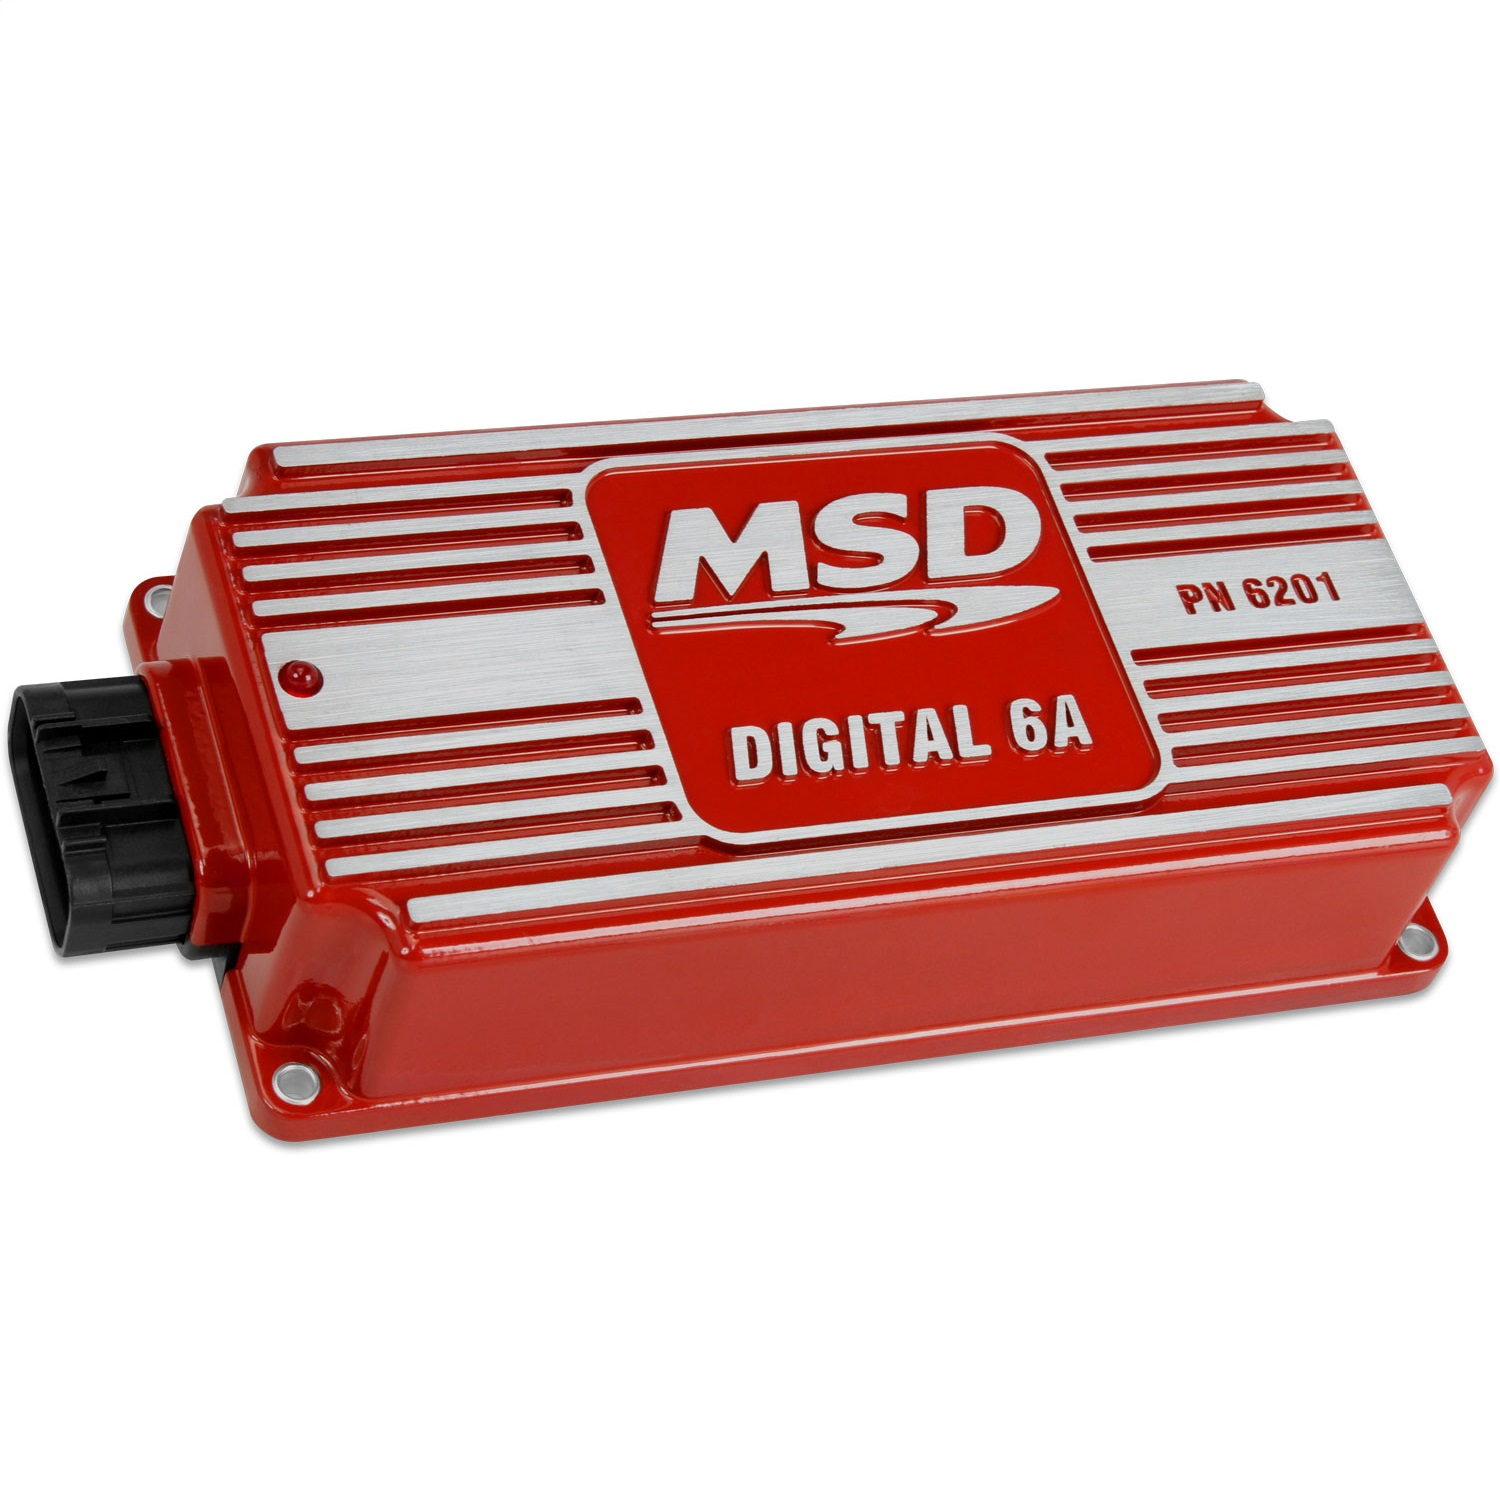 msd 6a wiring diagram chrysler three phase rotary converter ignition 6201 digital controller